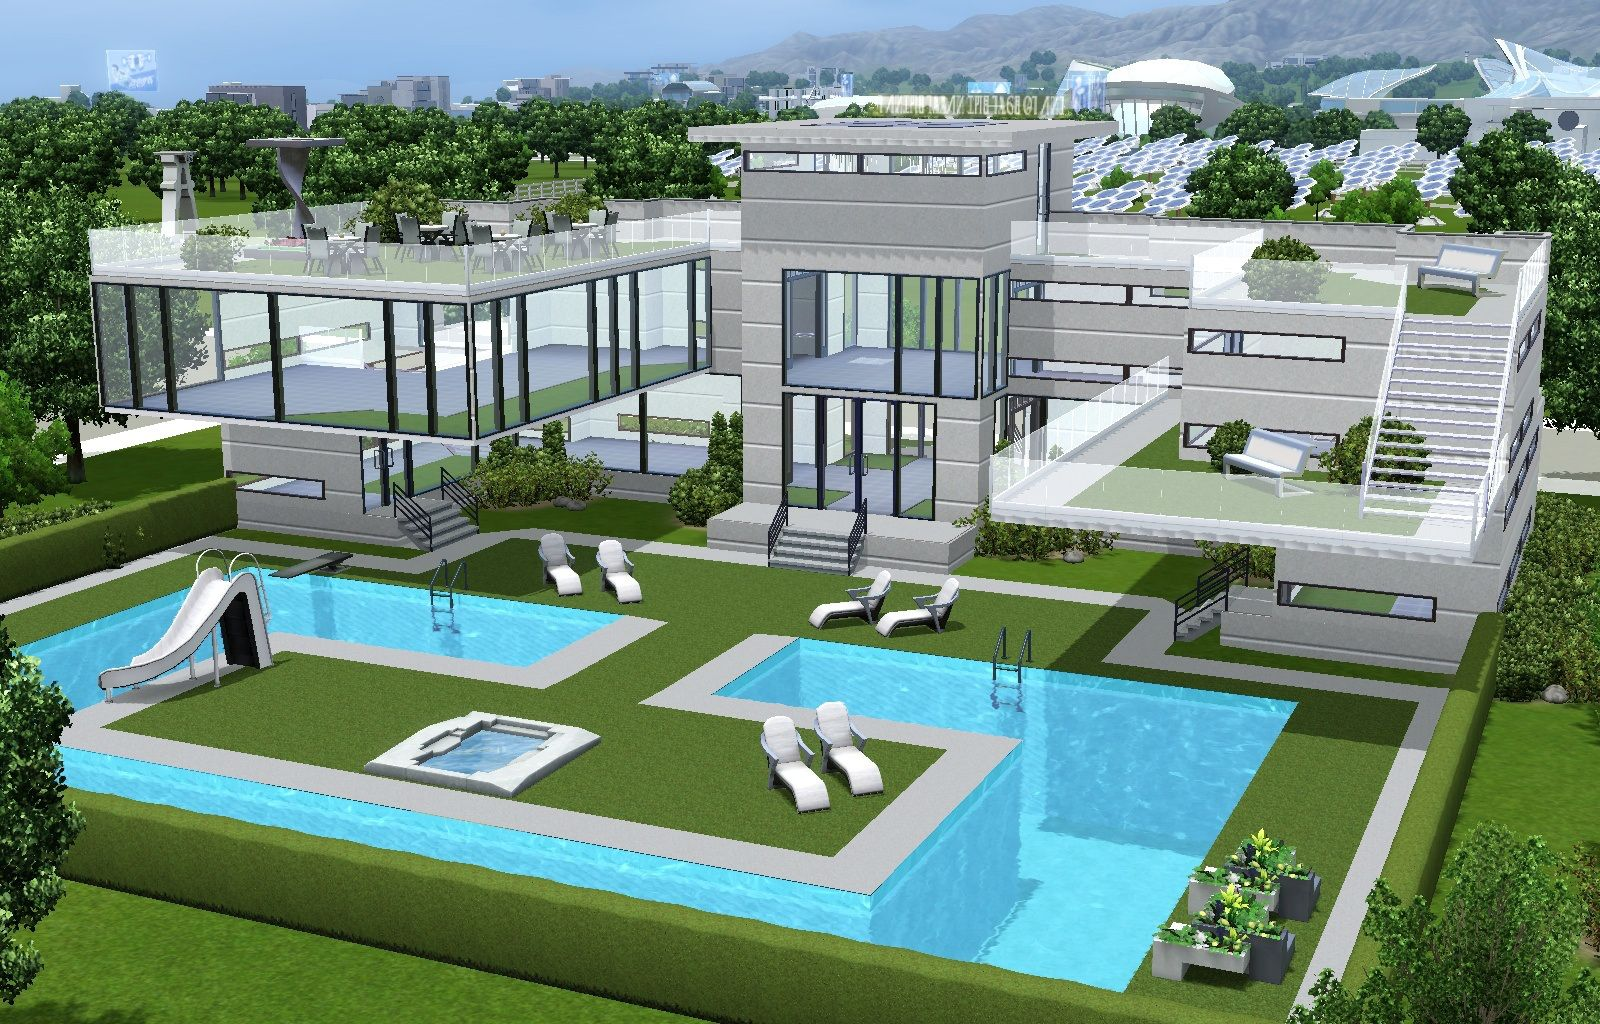 Pool Bauen Sims 3 Must Have Gorgeous Sims 3 Houses And Villas S I M S